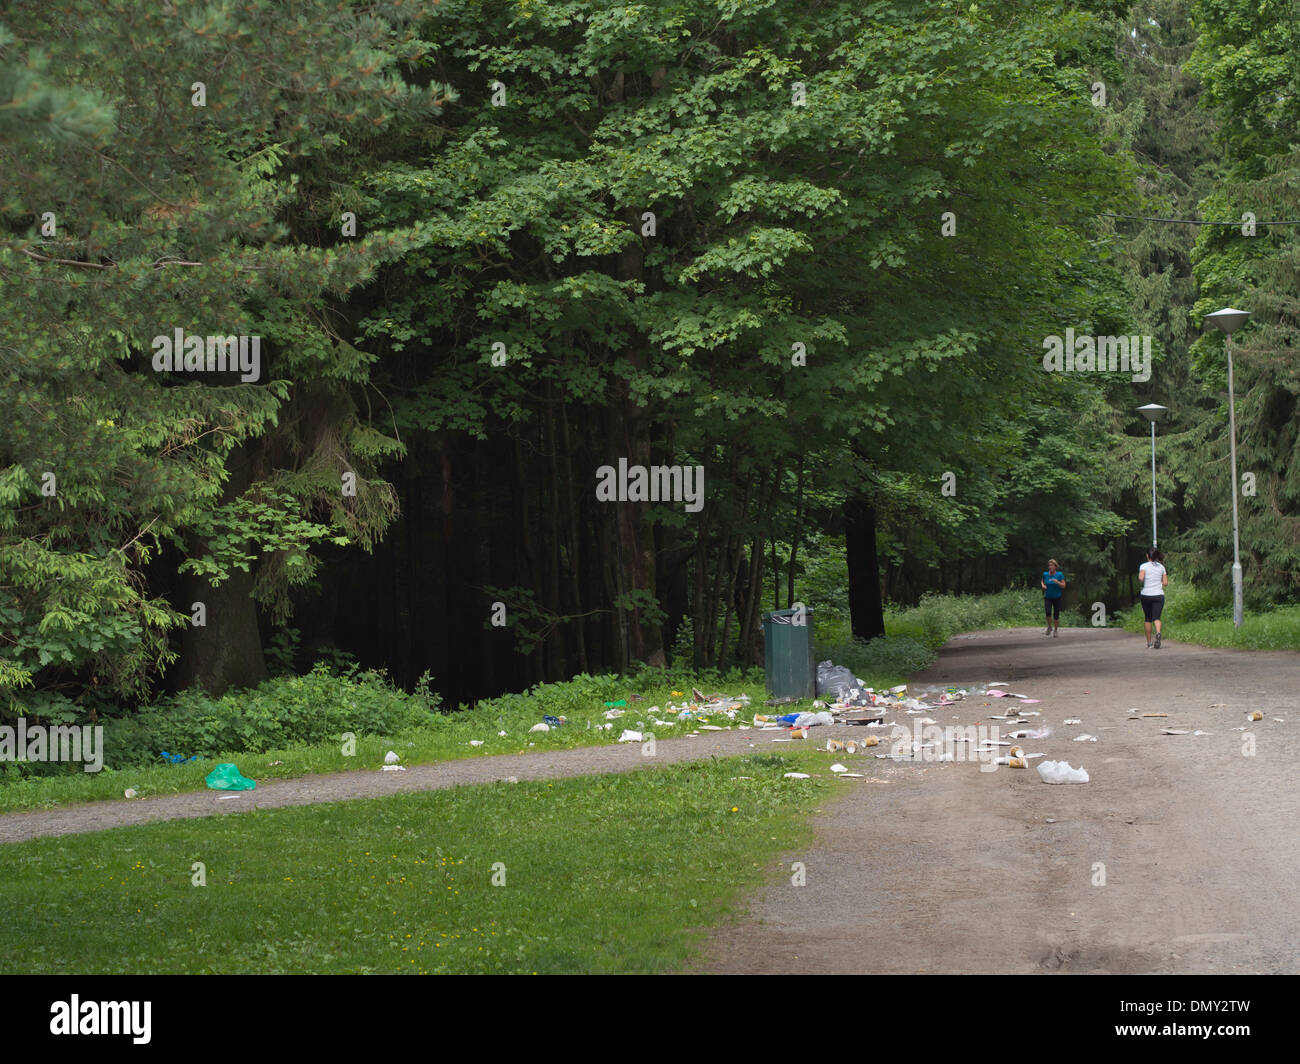 Park or woodland area with footpaths, wastepaper and other garbage polluting the area around a bin, two joggers, Oslo Norway - Stock Image